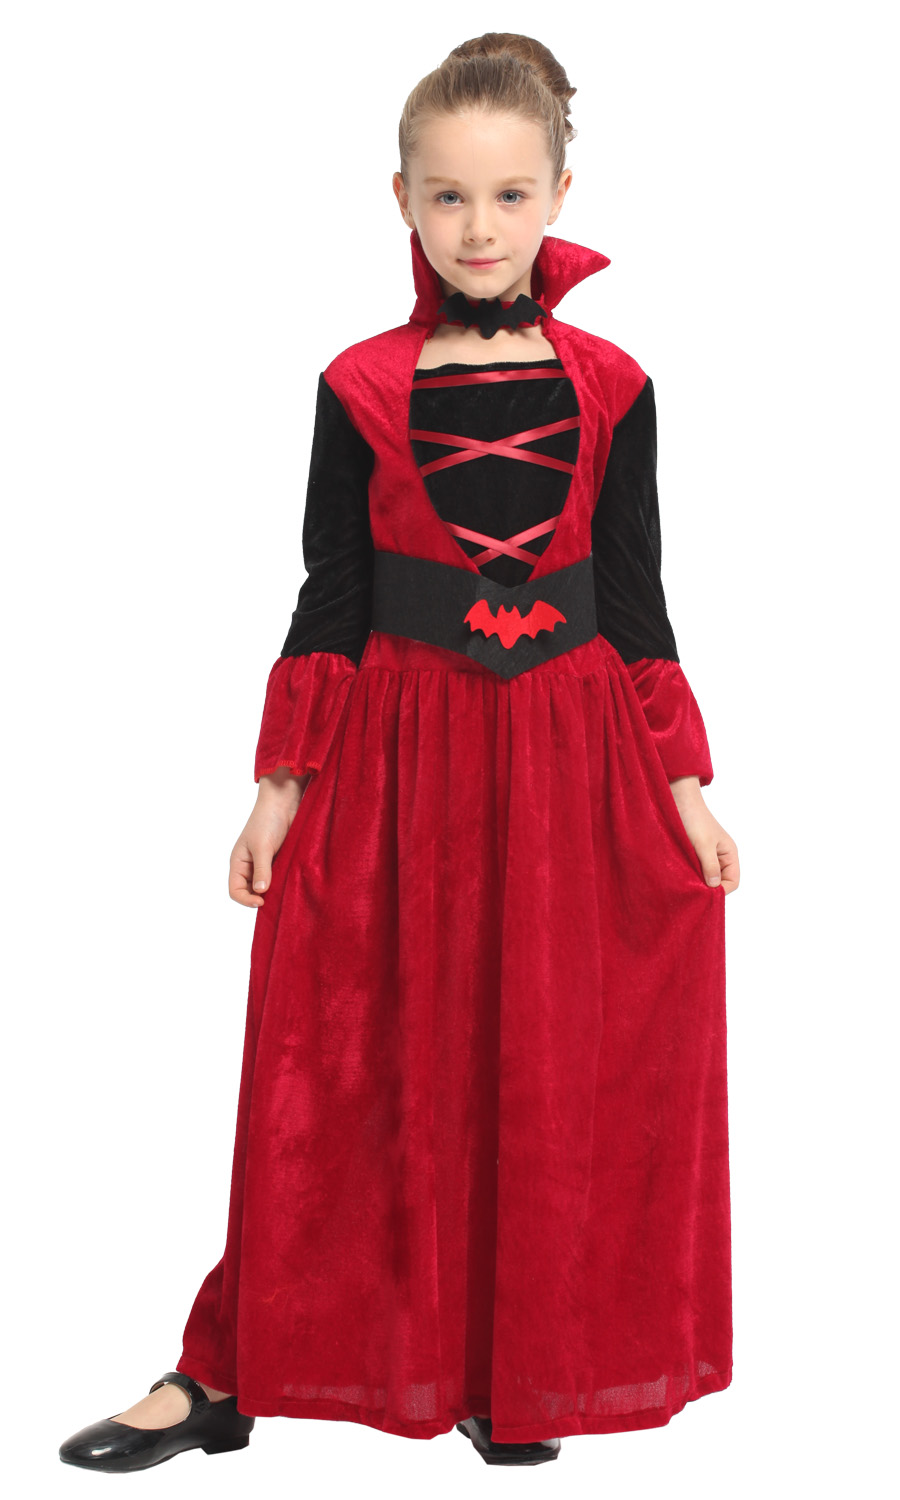 deluxe Girls Vampire Princess Costumes Cosplay witch Red Dresses role play clothing set Costume For kids Halloween Party